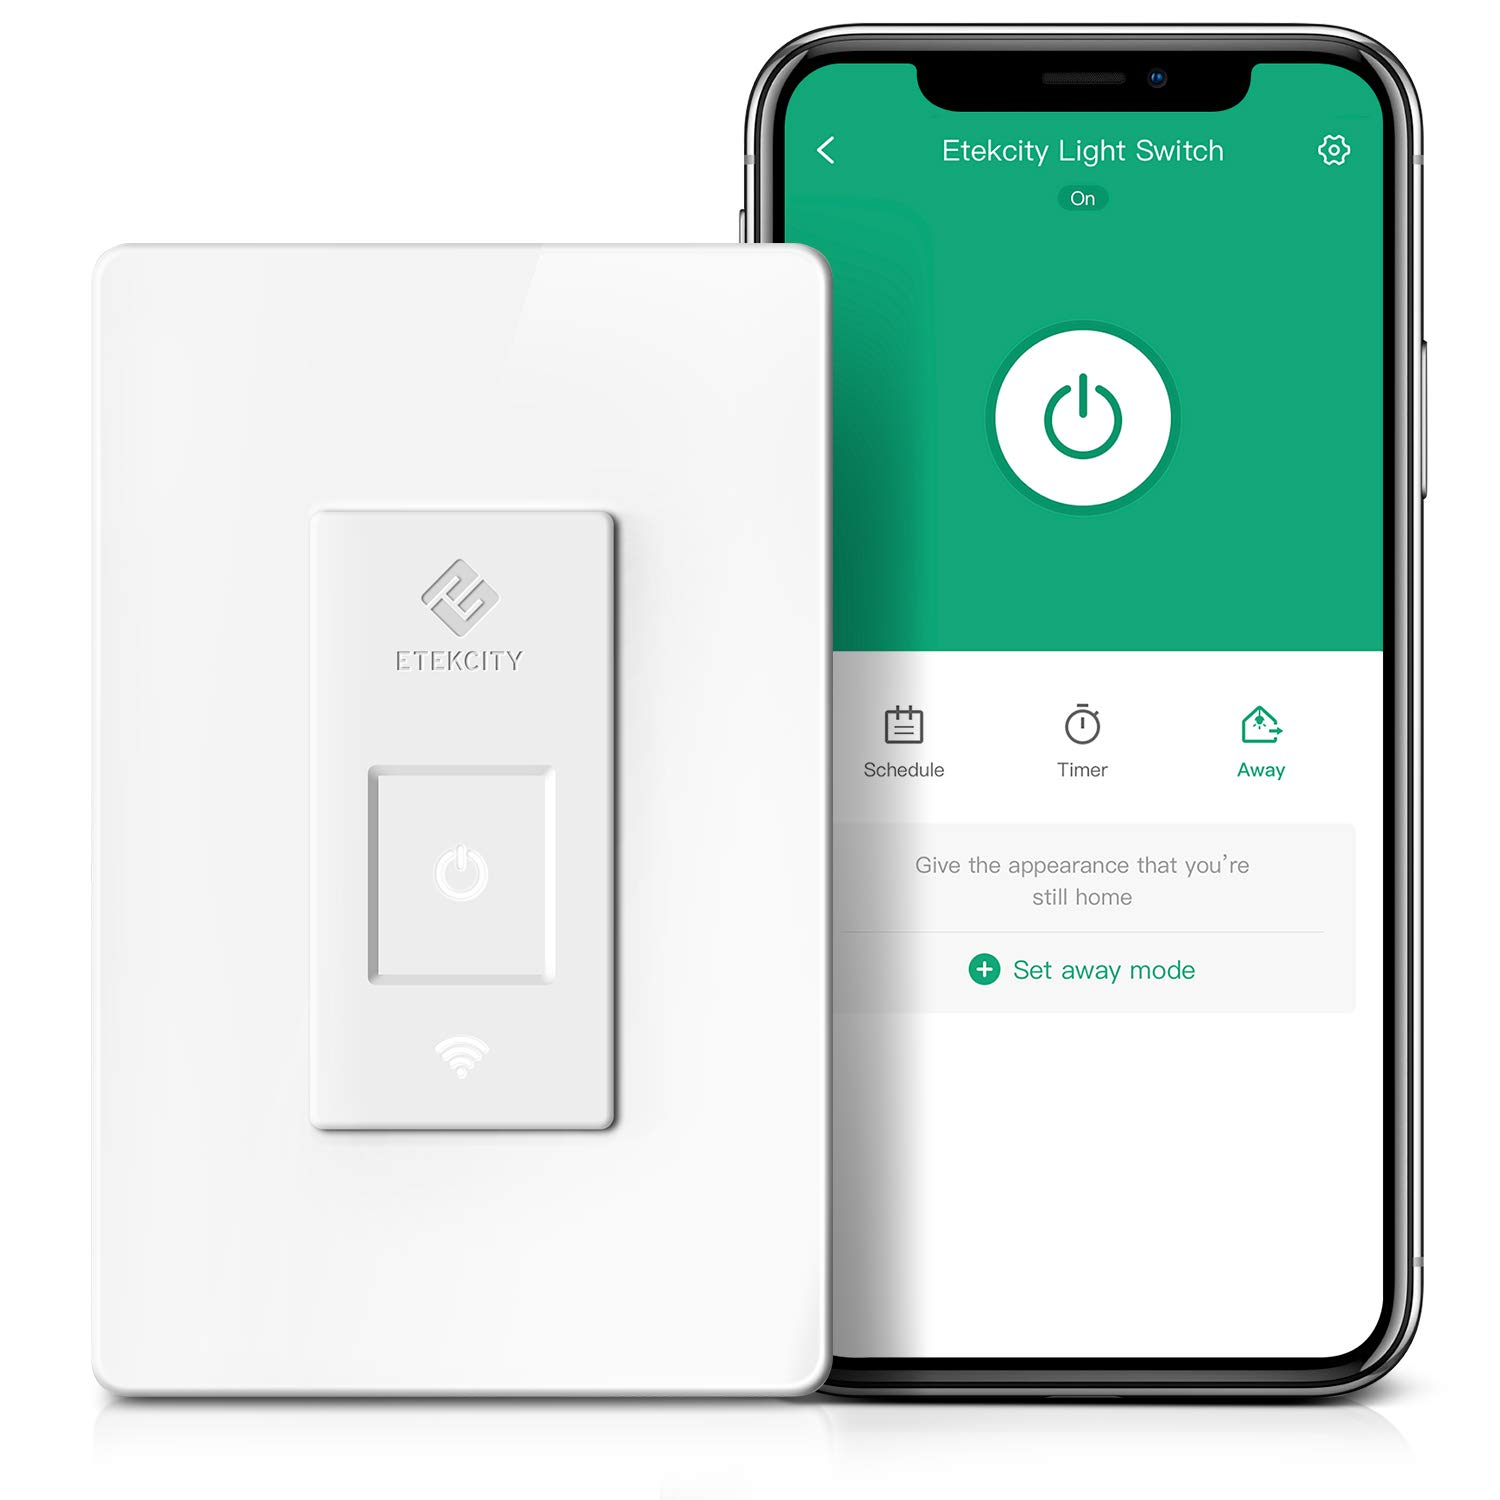 Etekcity ESWL01 ESWL01-USA WiFi Smart Light Switch, White by Etekcity